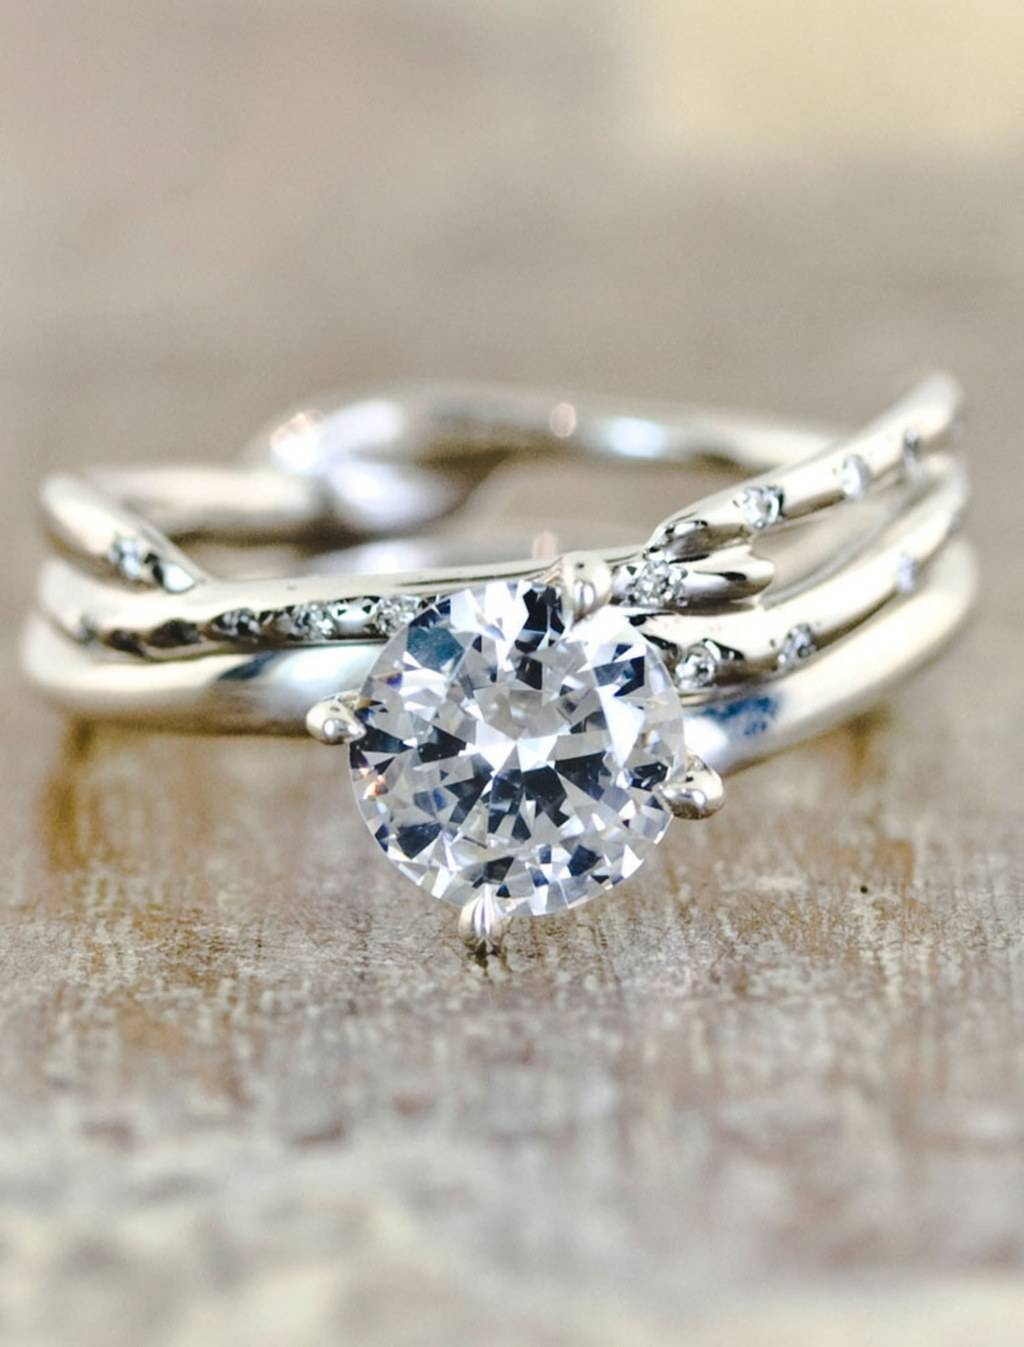 Unique Engagement Rings: Rustic Engagement Rings, Eco Friendly Inside Rustic Engagement Rings (View 10 of 15)